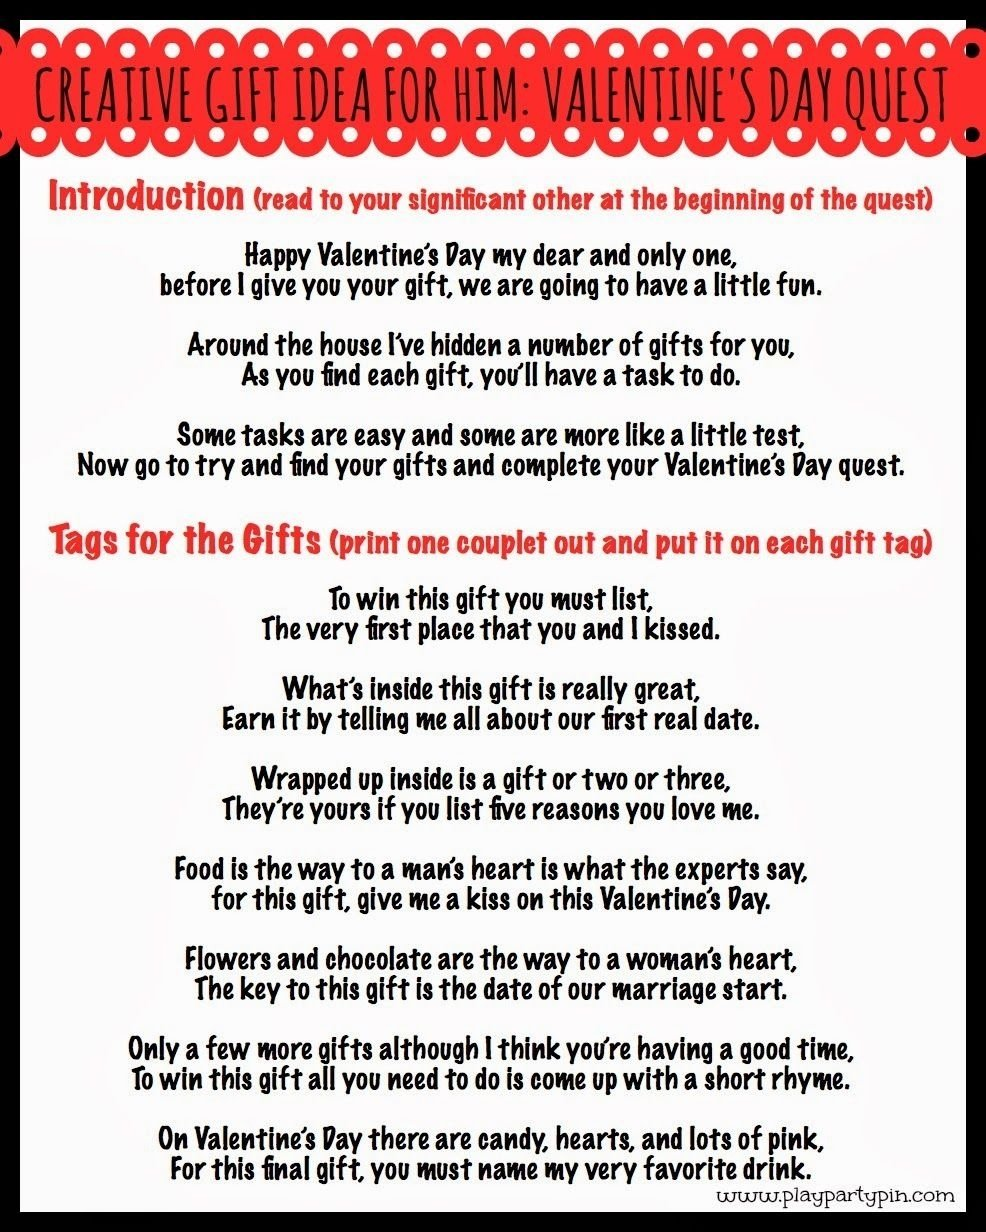 a fun and creative valentine's day gift idea for him | share your